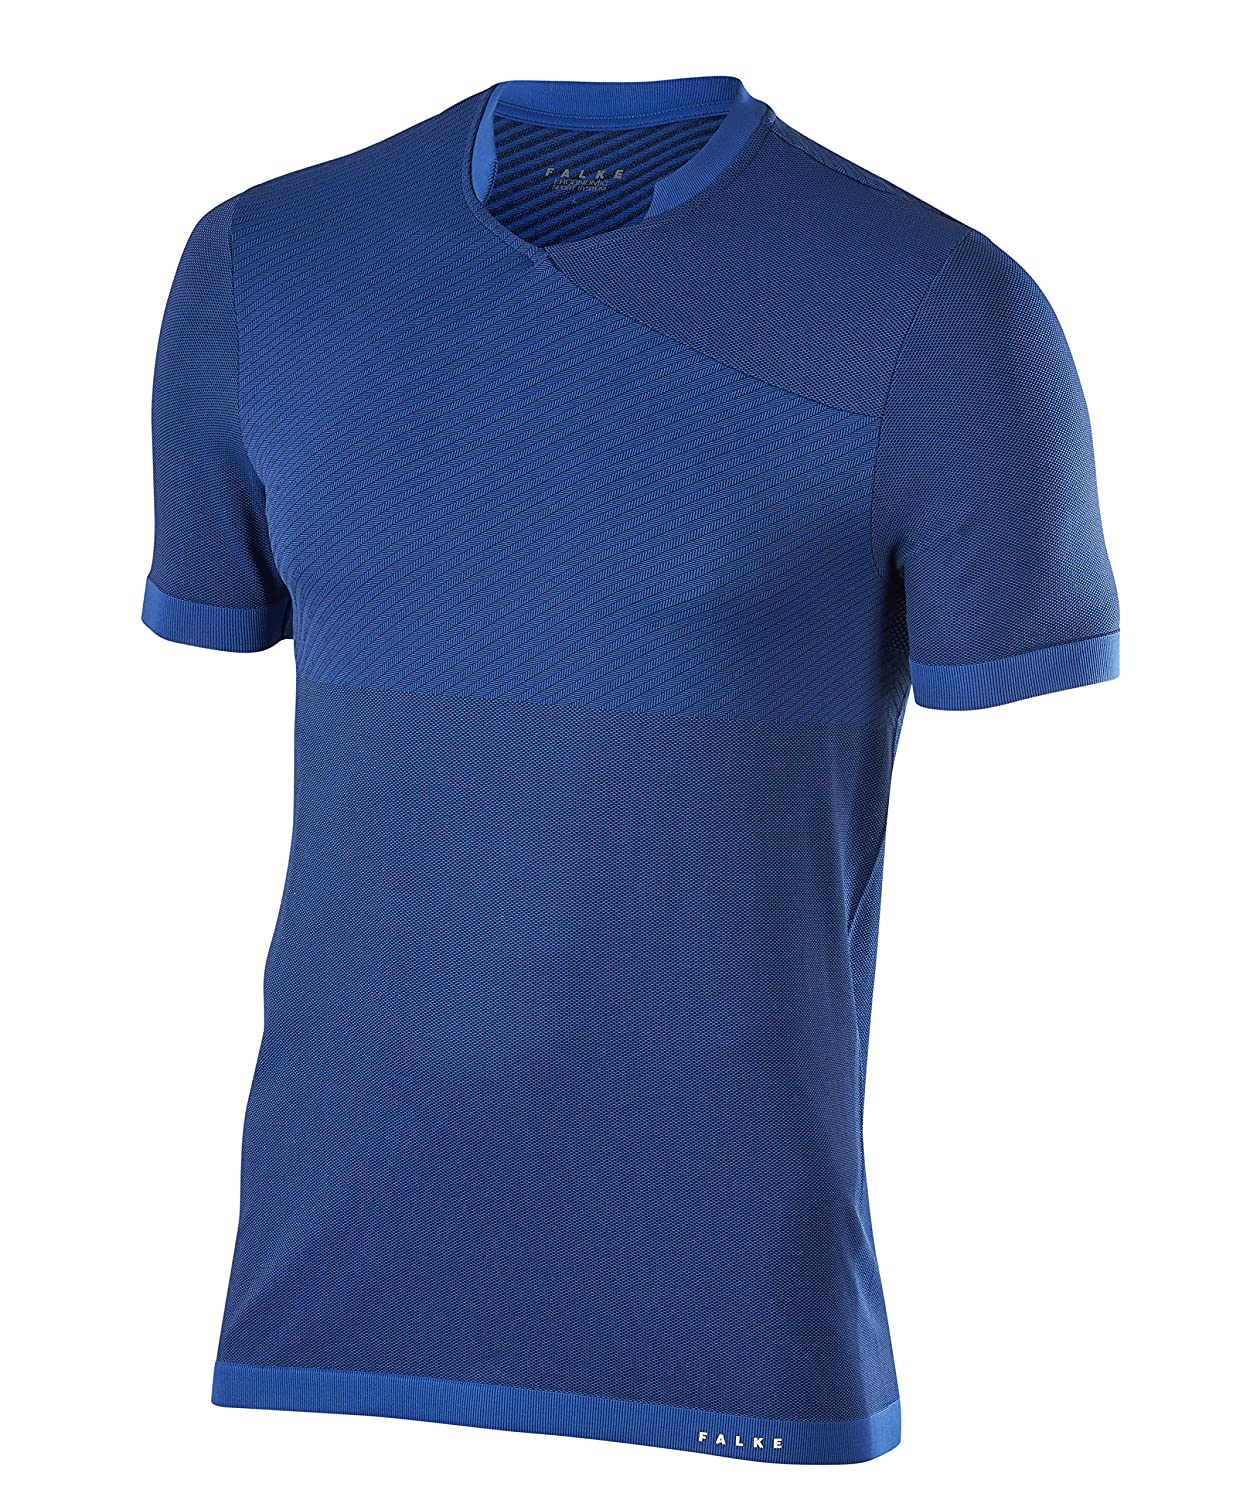 FALKE Herren Shortsleeved Shirt Fitness Men Sportbekleidung